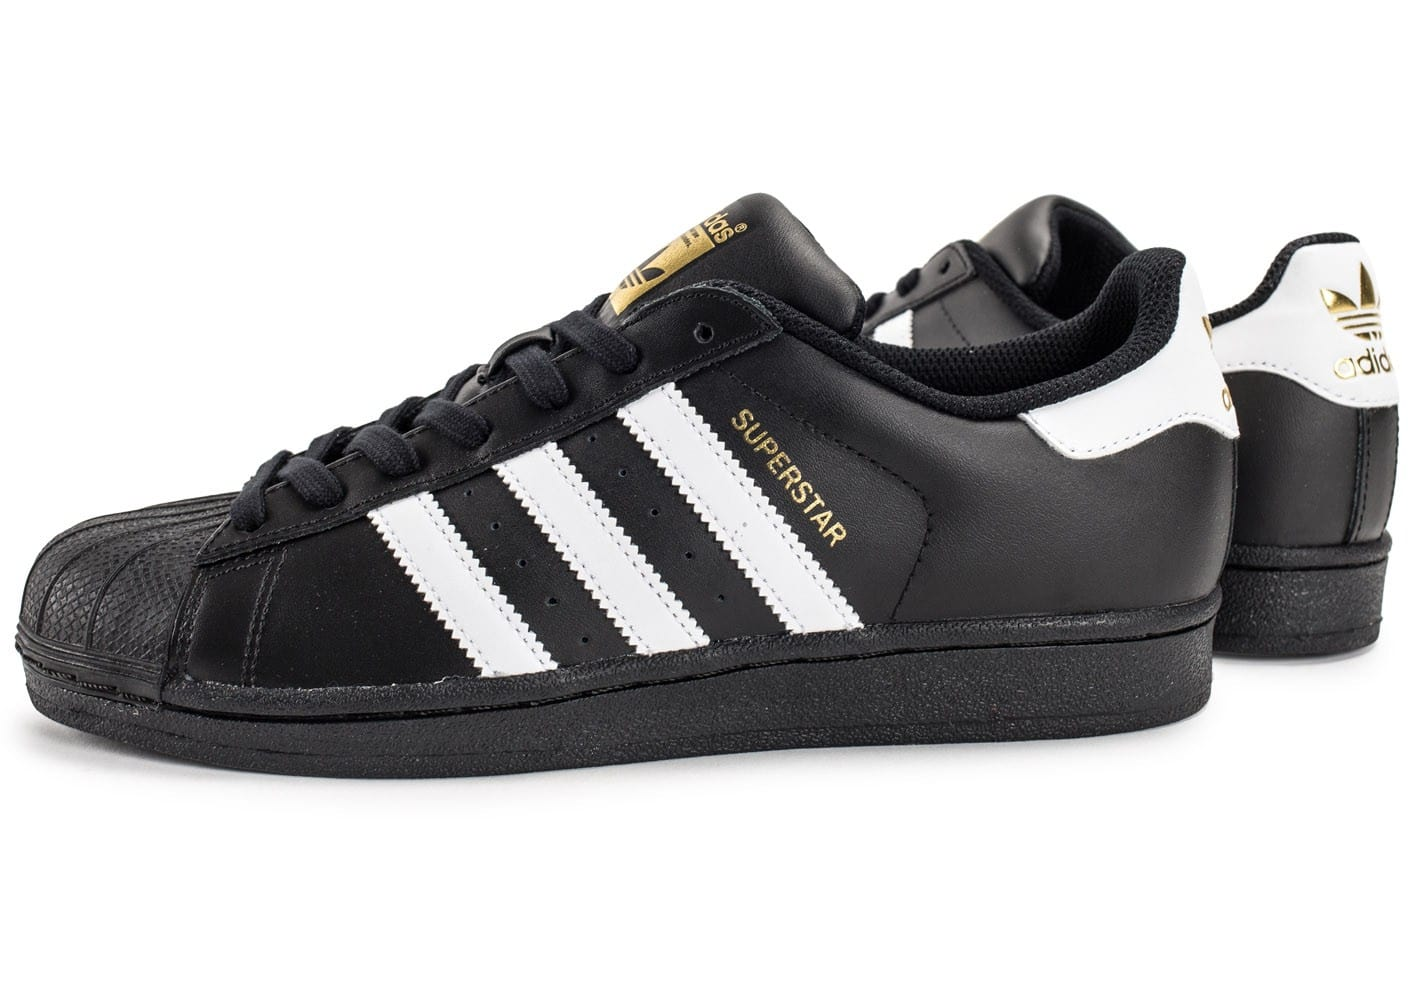 adidas superstar foundation noire chaussures homme chausport. Black Bedroom Furniture Sets. Home Design Ideas